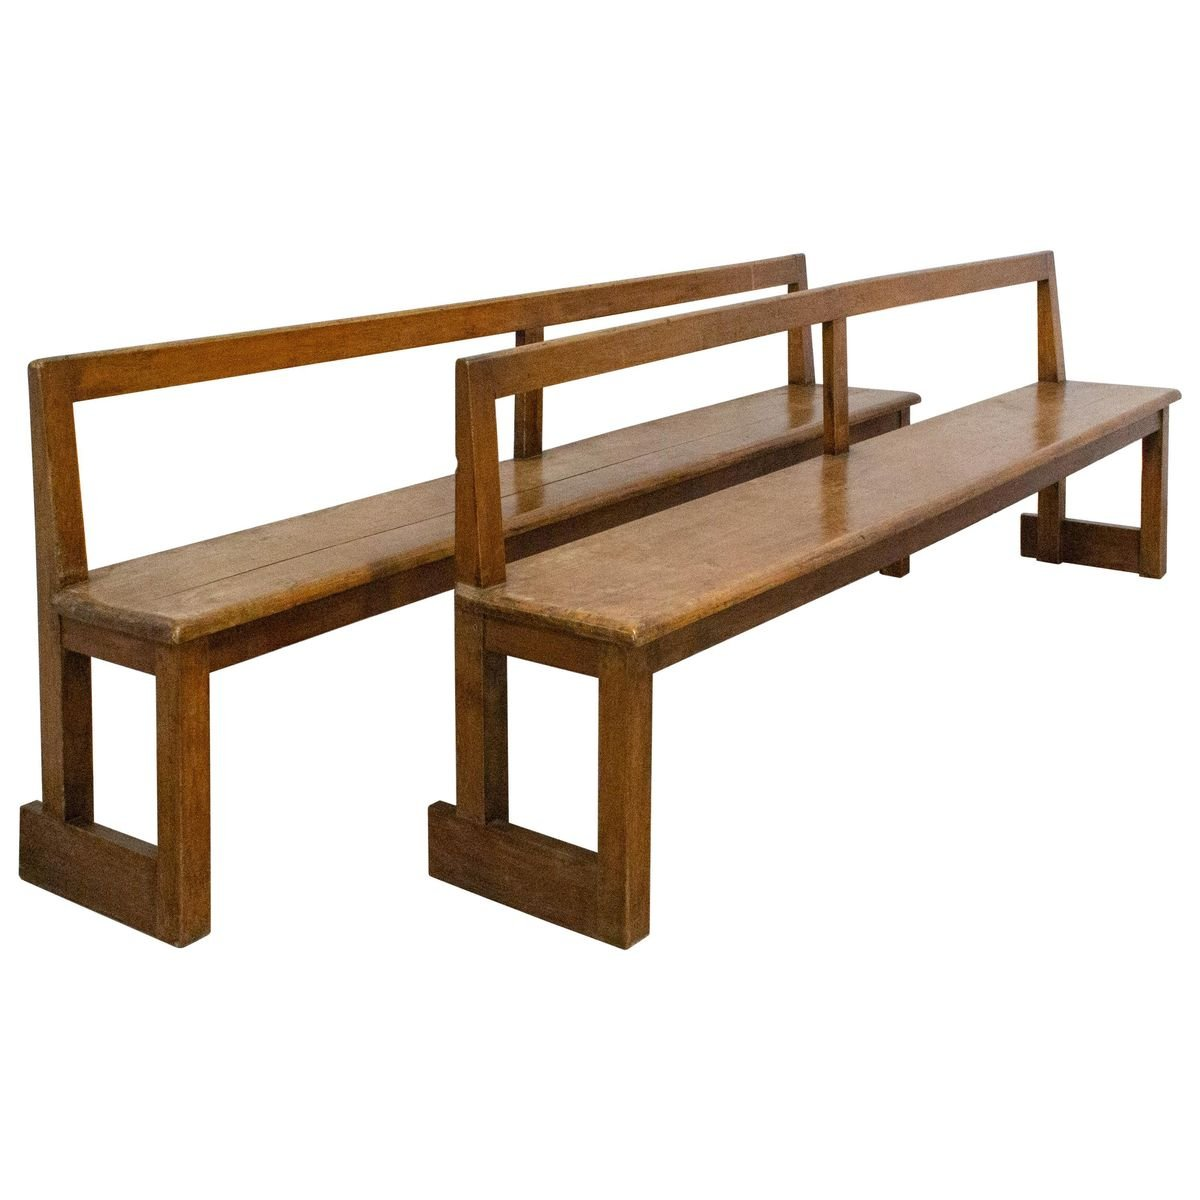 French Antique Style Farmhouse Benches With Backs 1970s Set Of 2 For Sale At Pamono